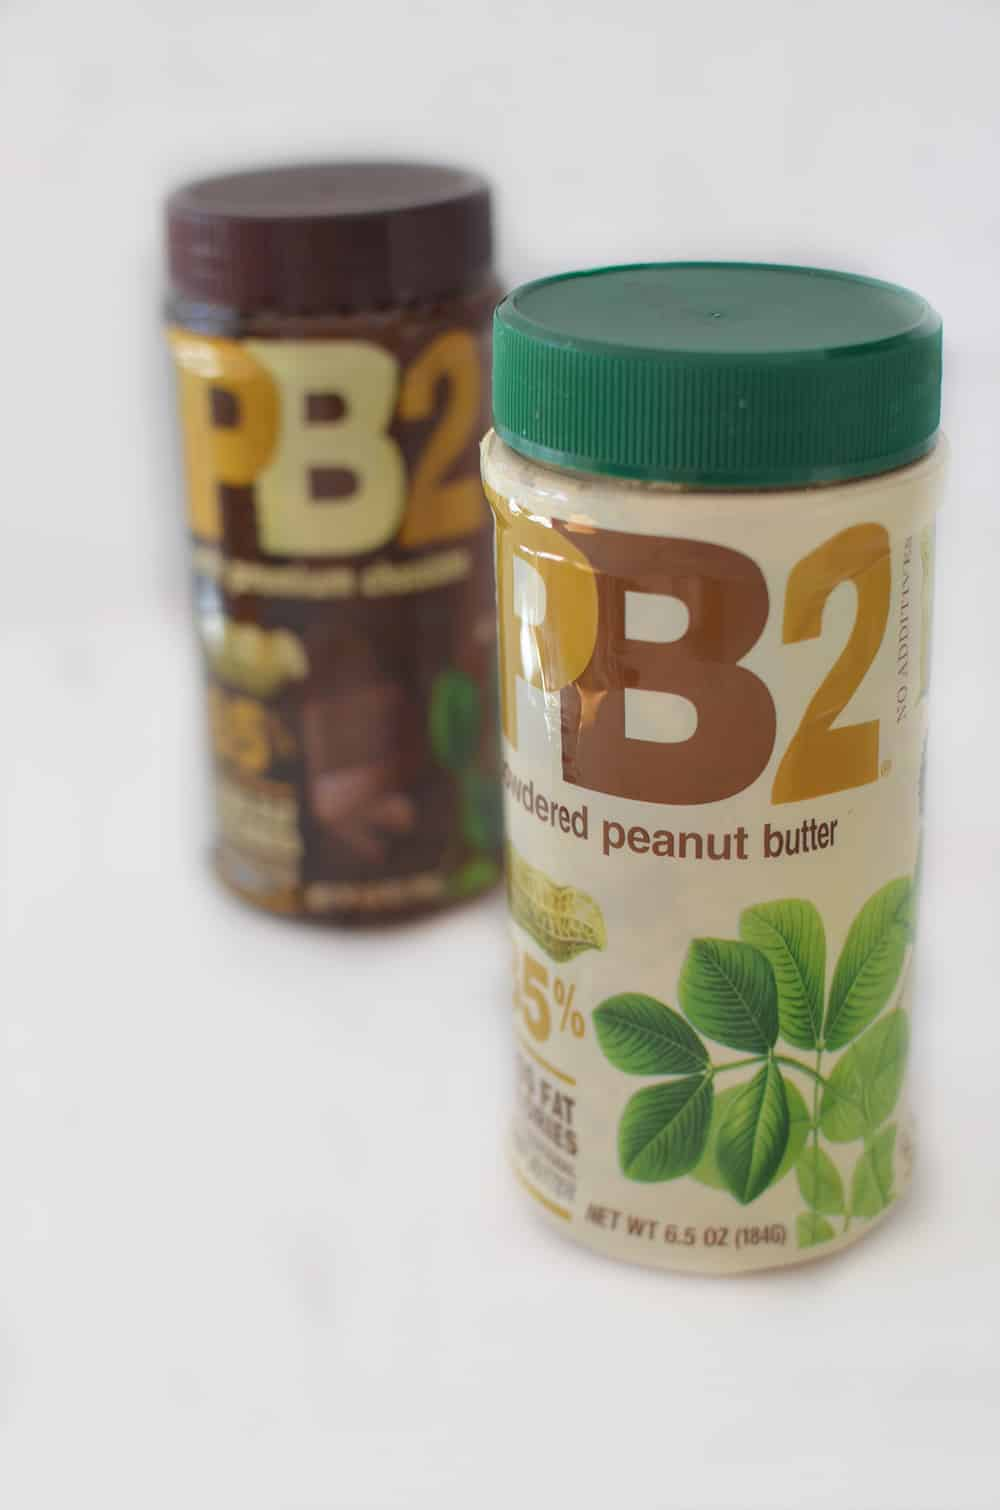 pb2foodfinds